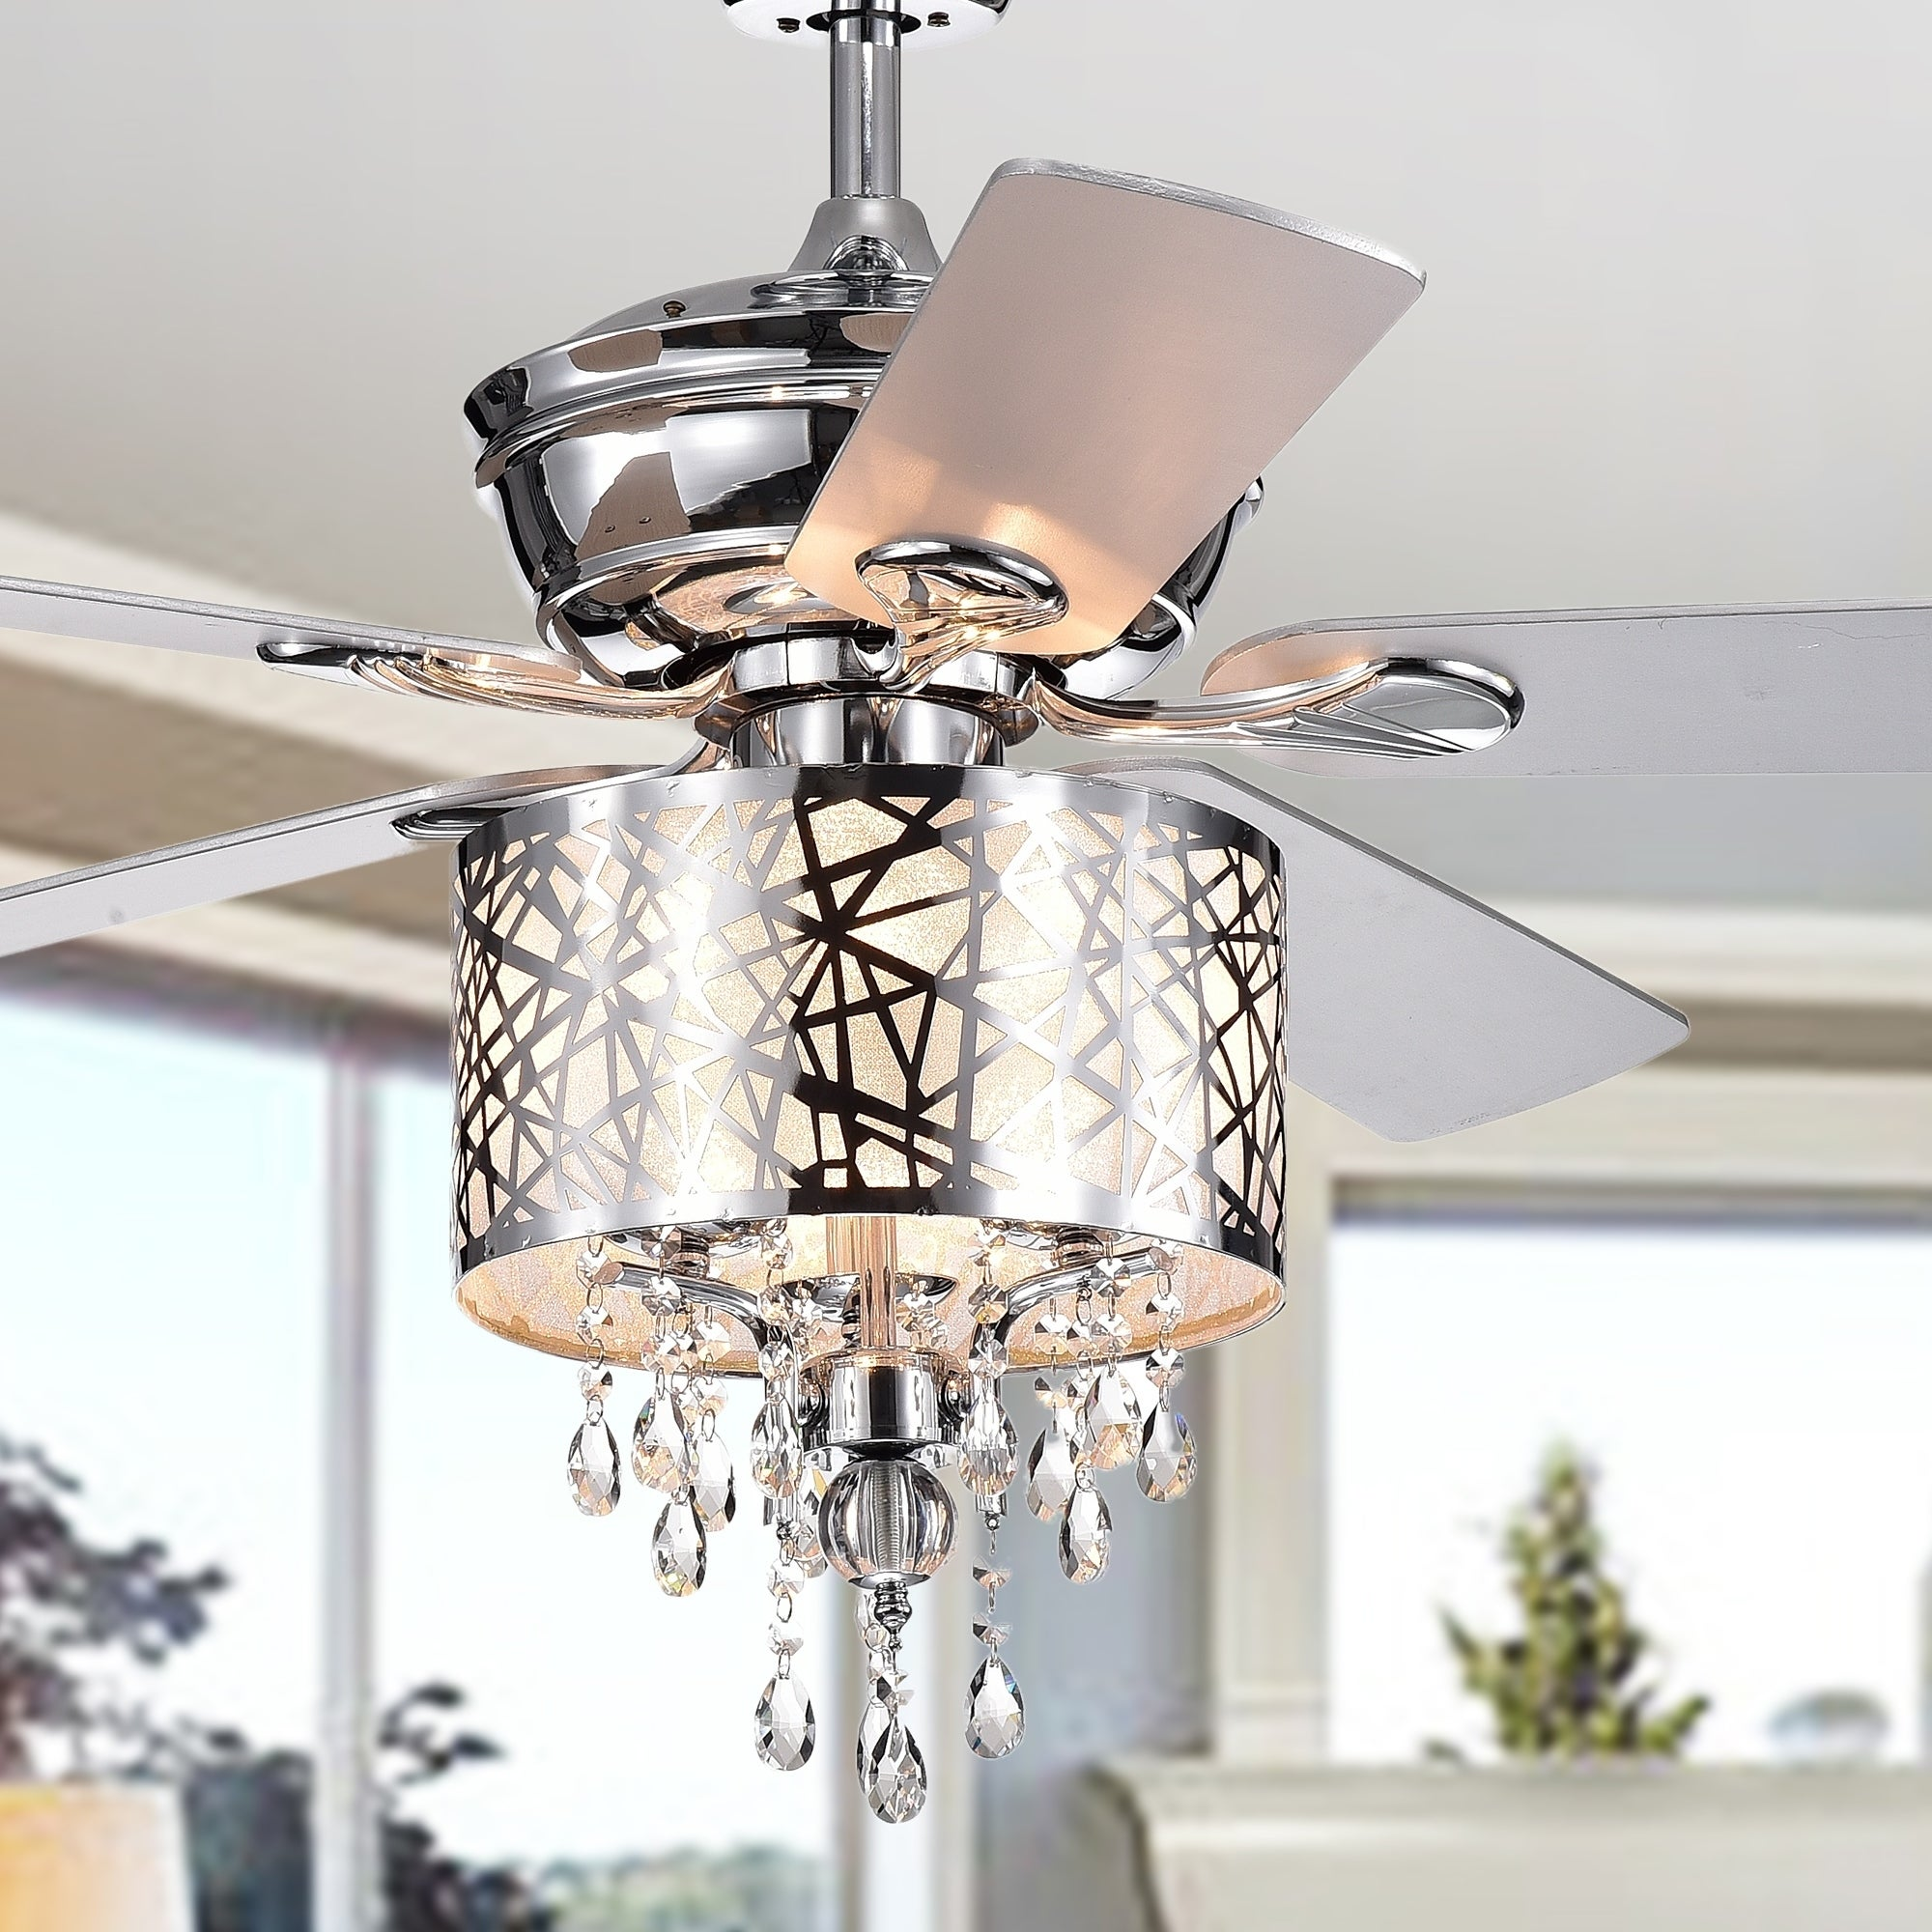 Ceiling Fan With Chandelier Light: Garvey 5-blade 52-in Chrome Ceiling Fan W/ 3-Light Crystal